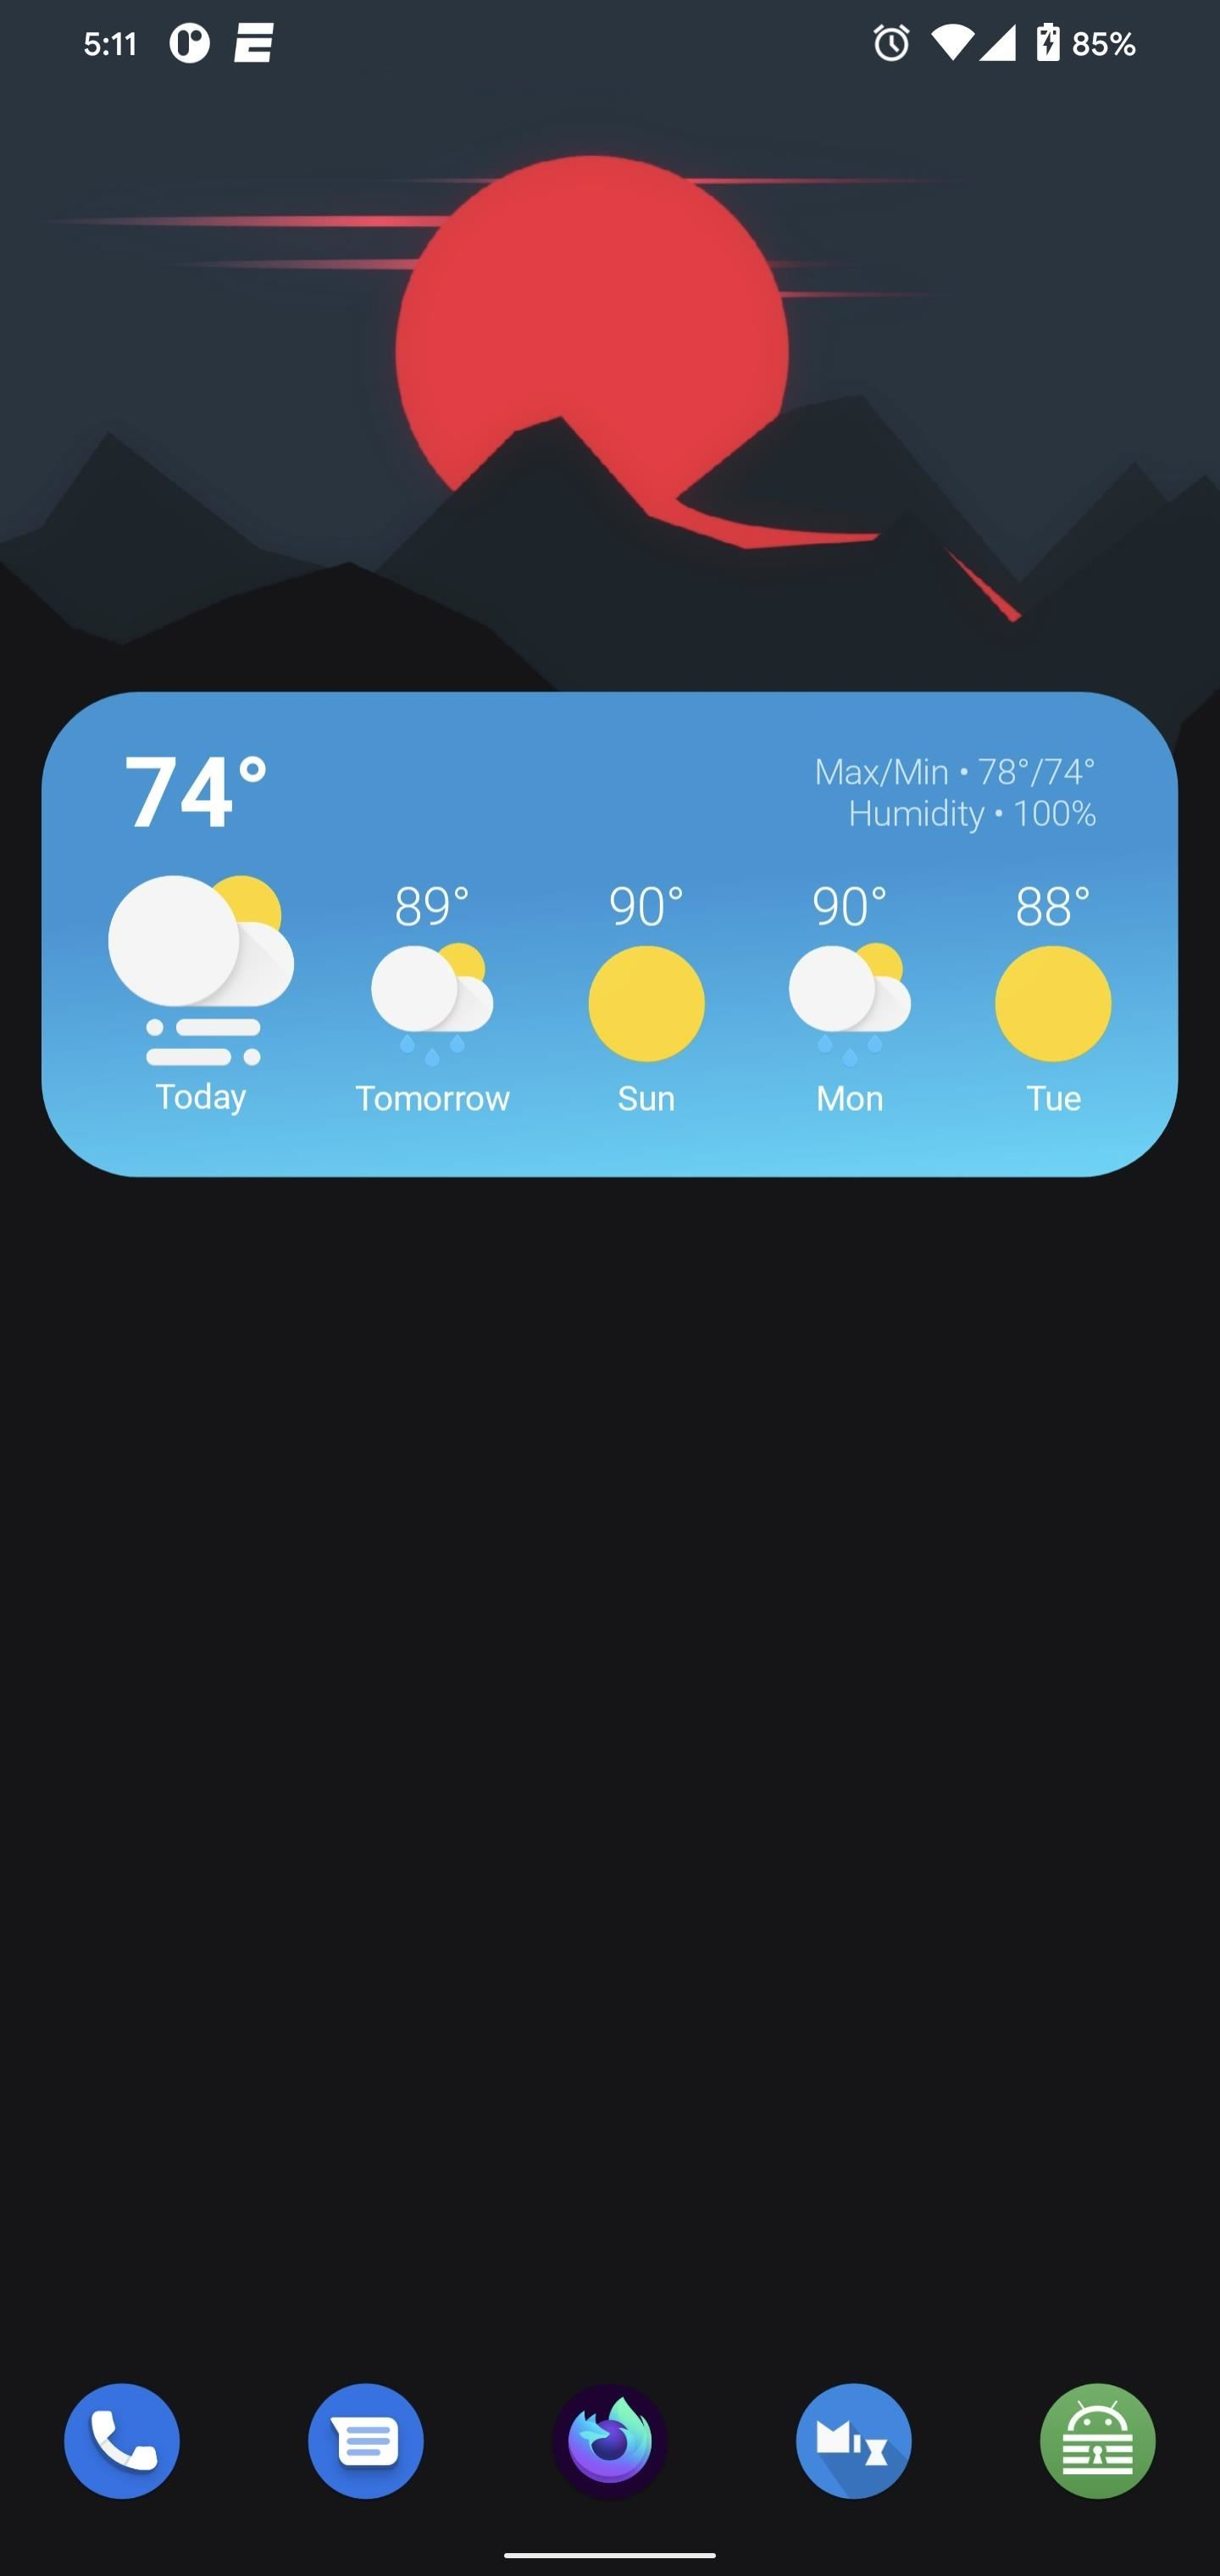 How to Get the iPhone's New Widgets from iOS 14 on Any Android Phone